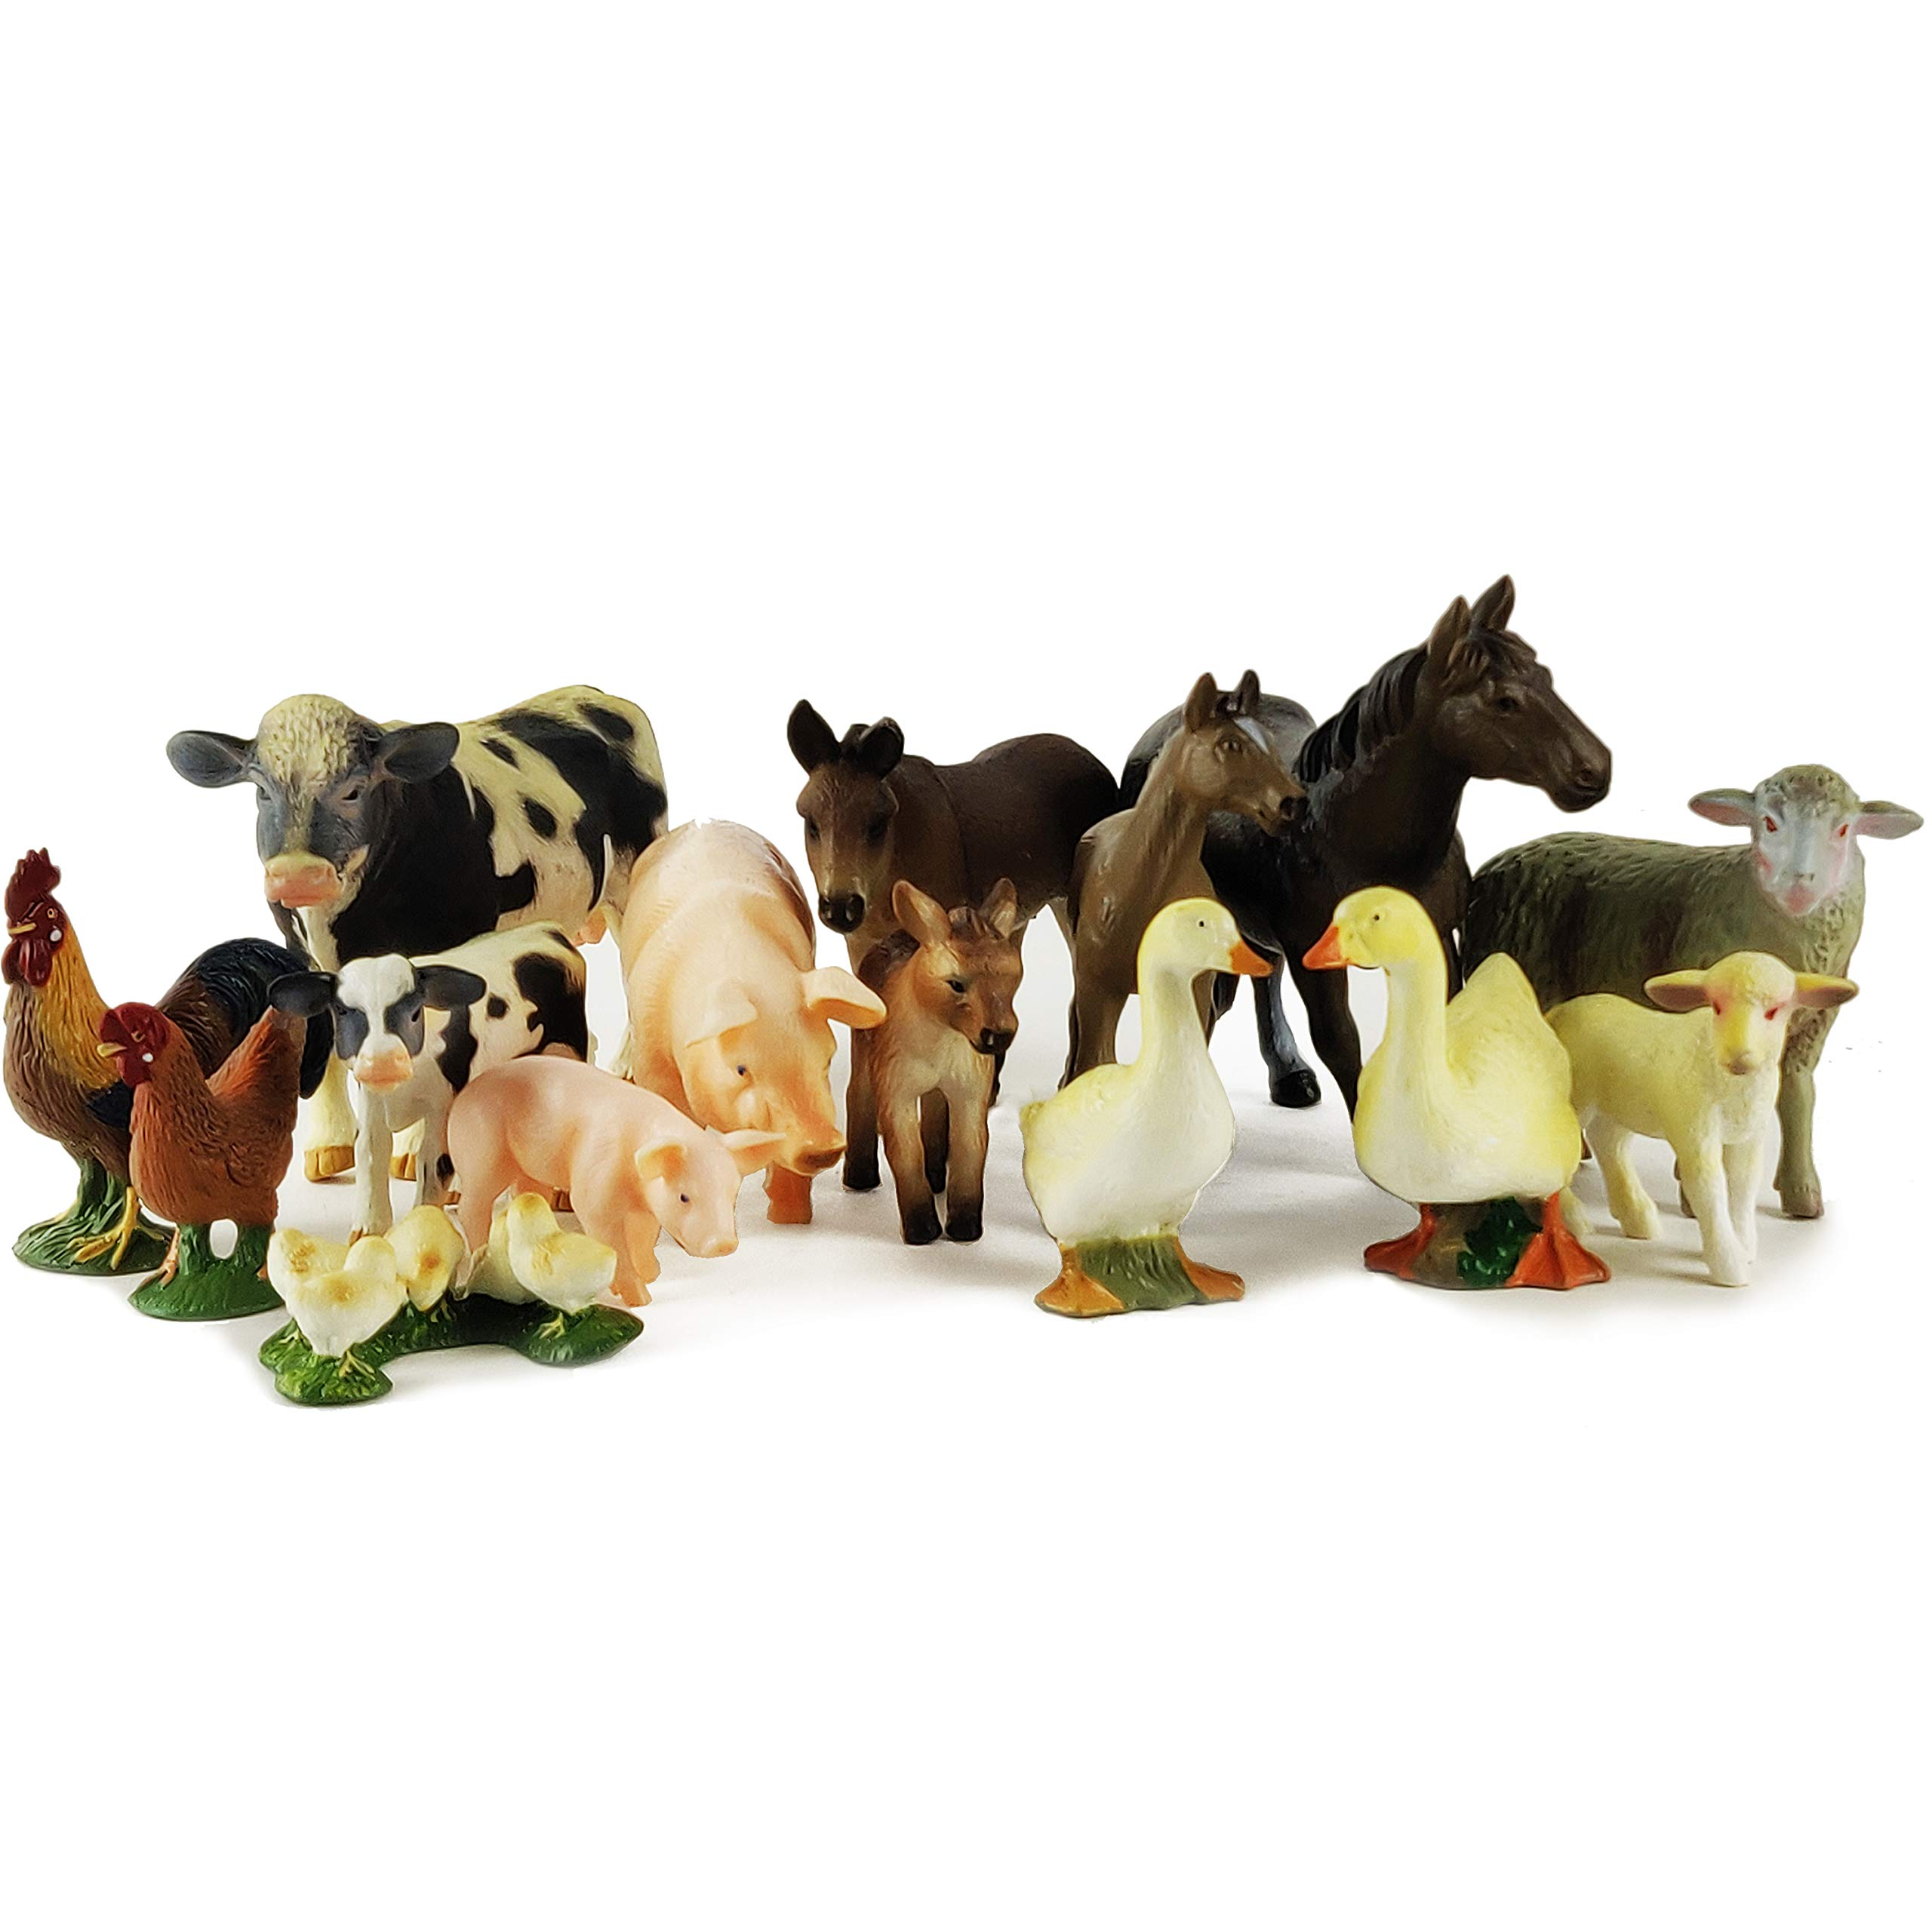 Boley Farm Animal Figurines - 15 Piece Playset of Small Realistic Plastic Assorted Farm Animals for Toddlers and Kids